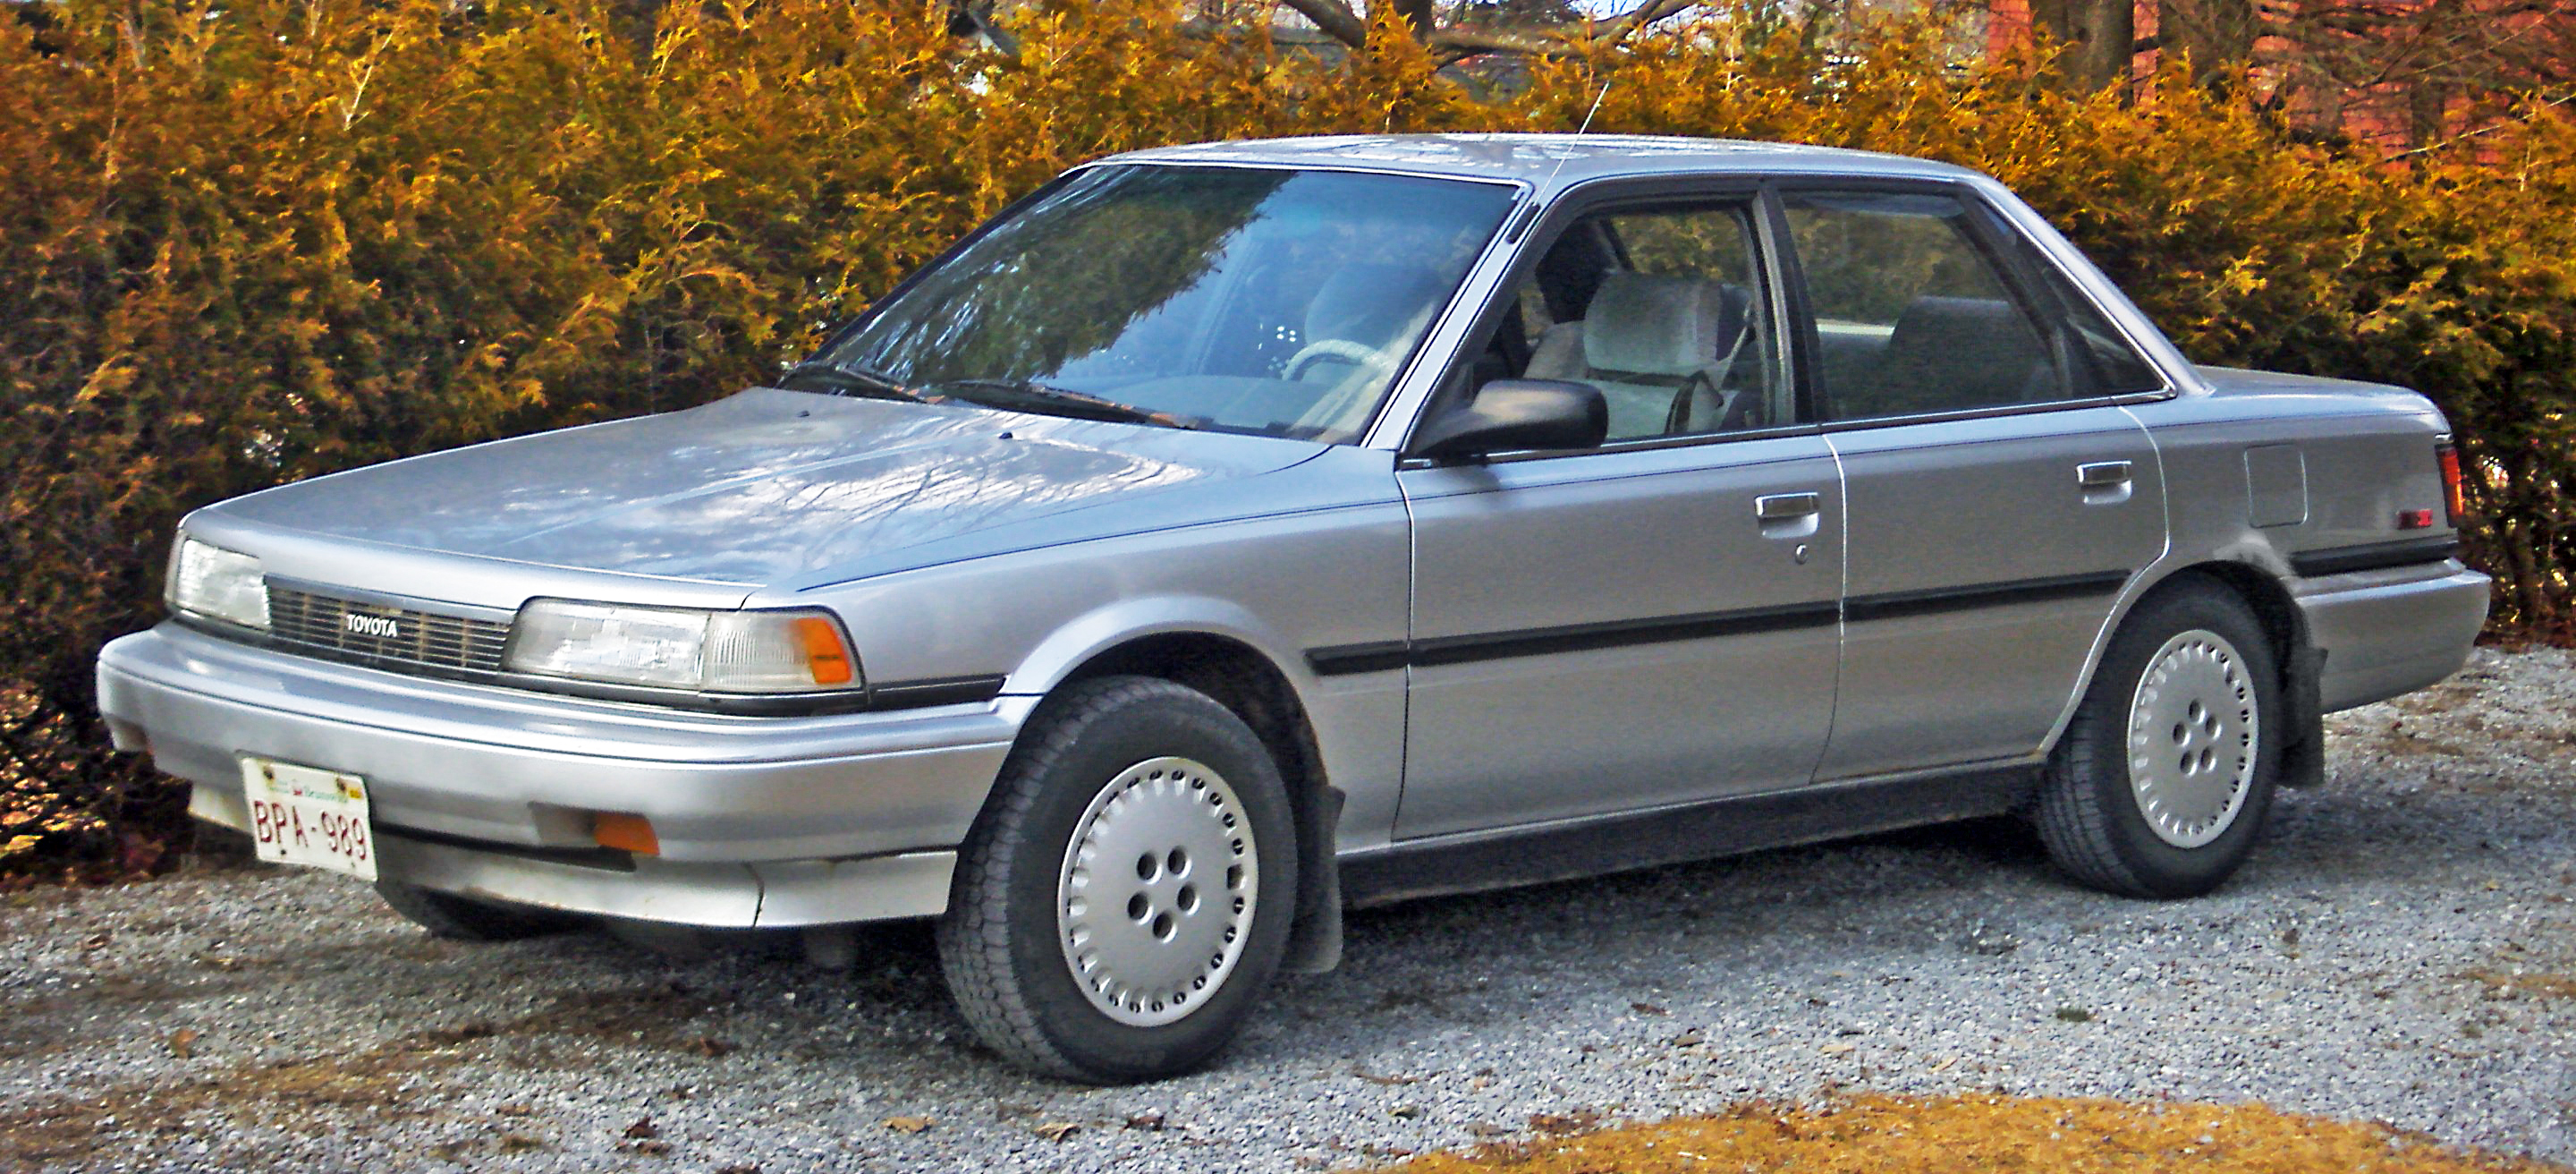 1990 Toyota Camry Fuse Box Wiring Library Mark 2 Carina Ii Stuf T17 Pictures Information And Specs